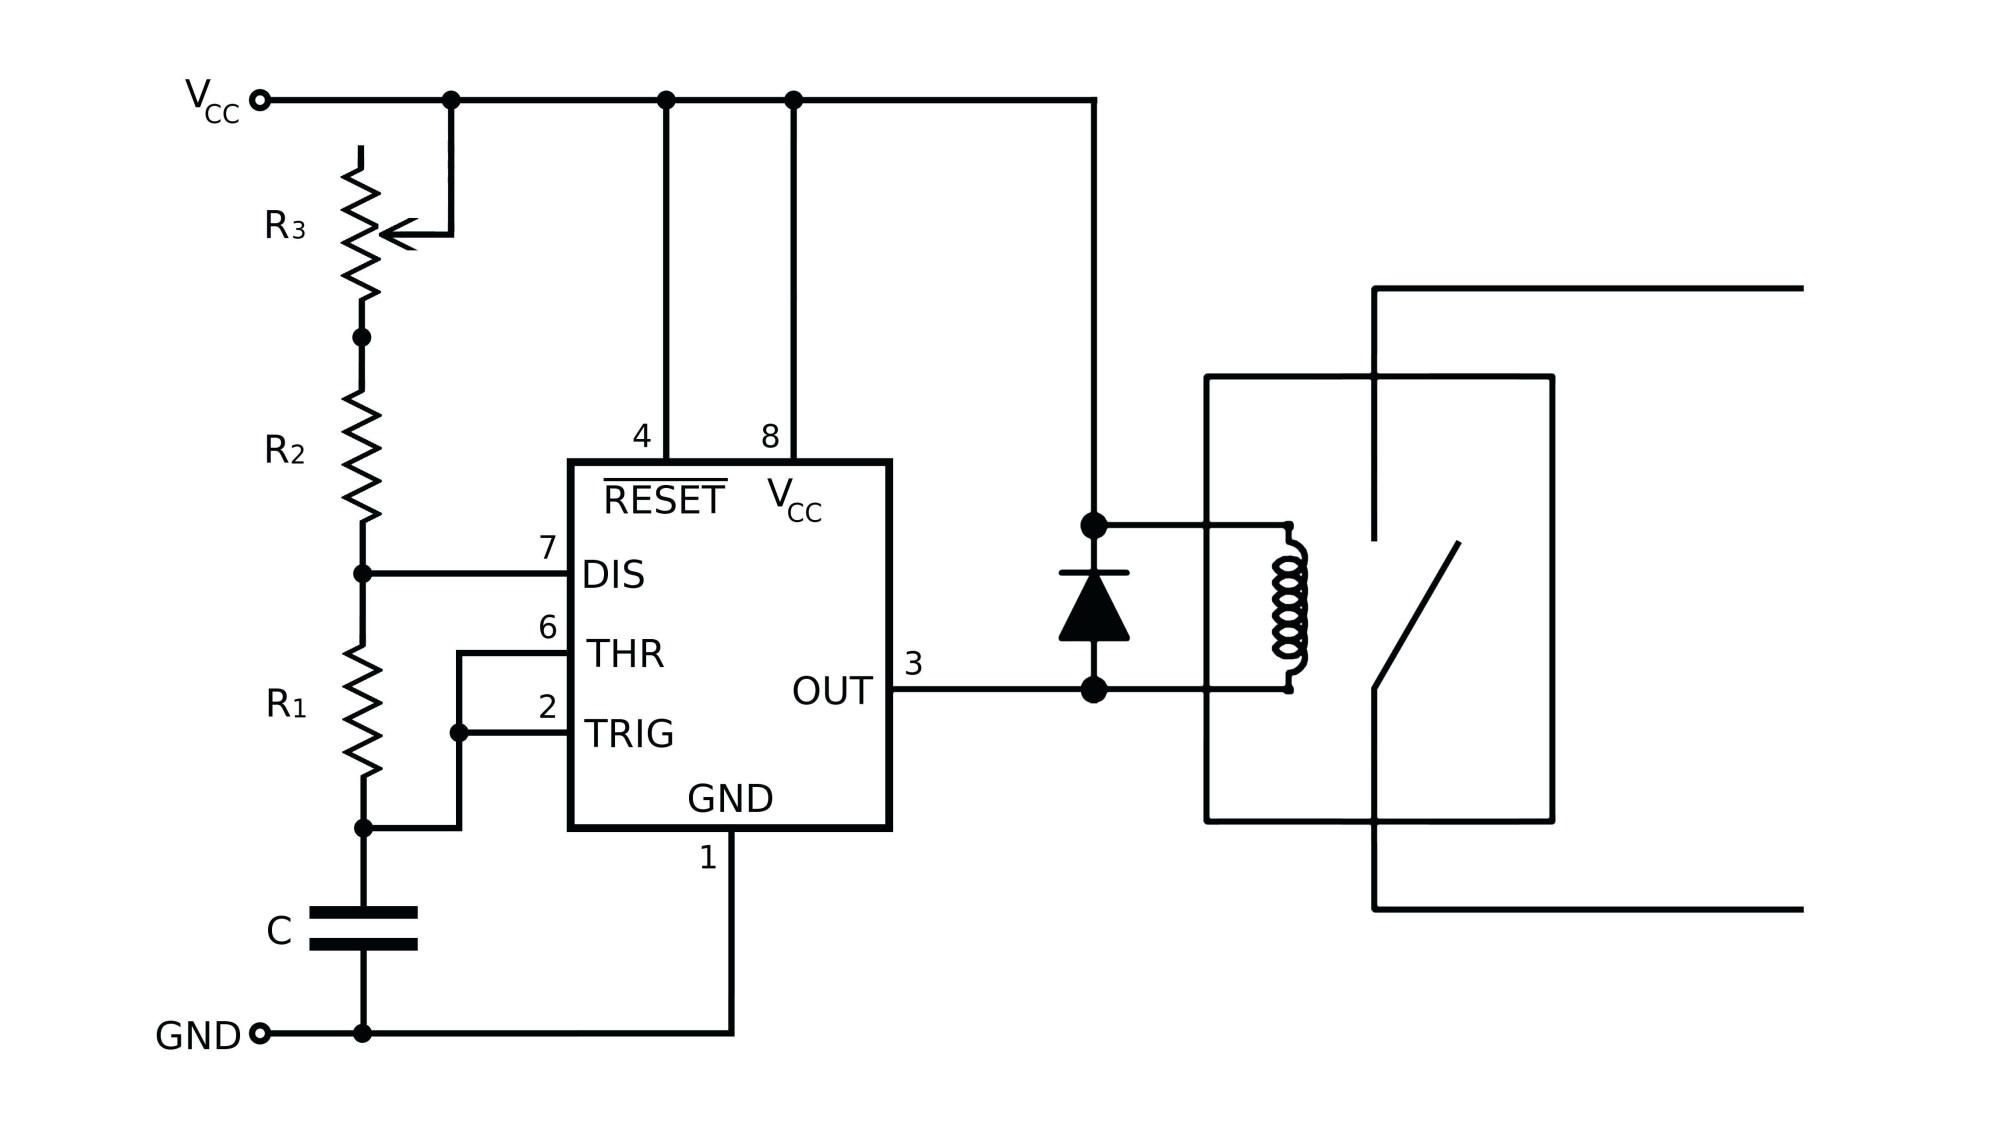 hight resolution of  ranco temperature controller wiring diagram collection on pinout diagrams electronic circuit diagrams battery diagrams